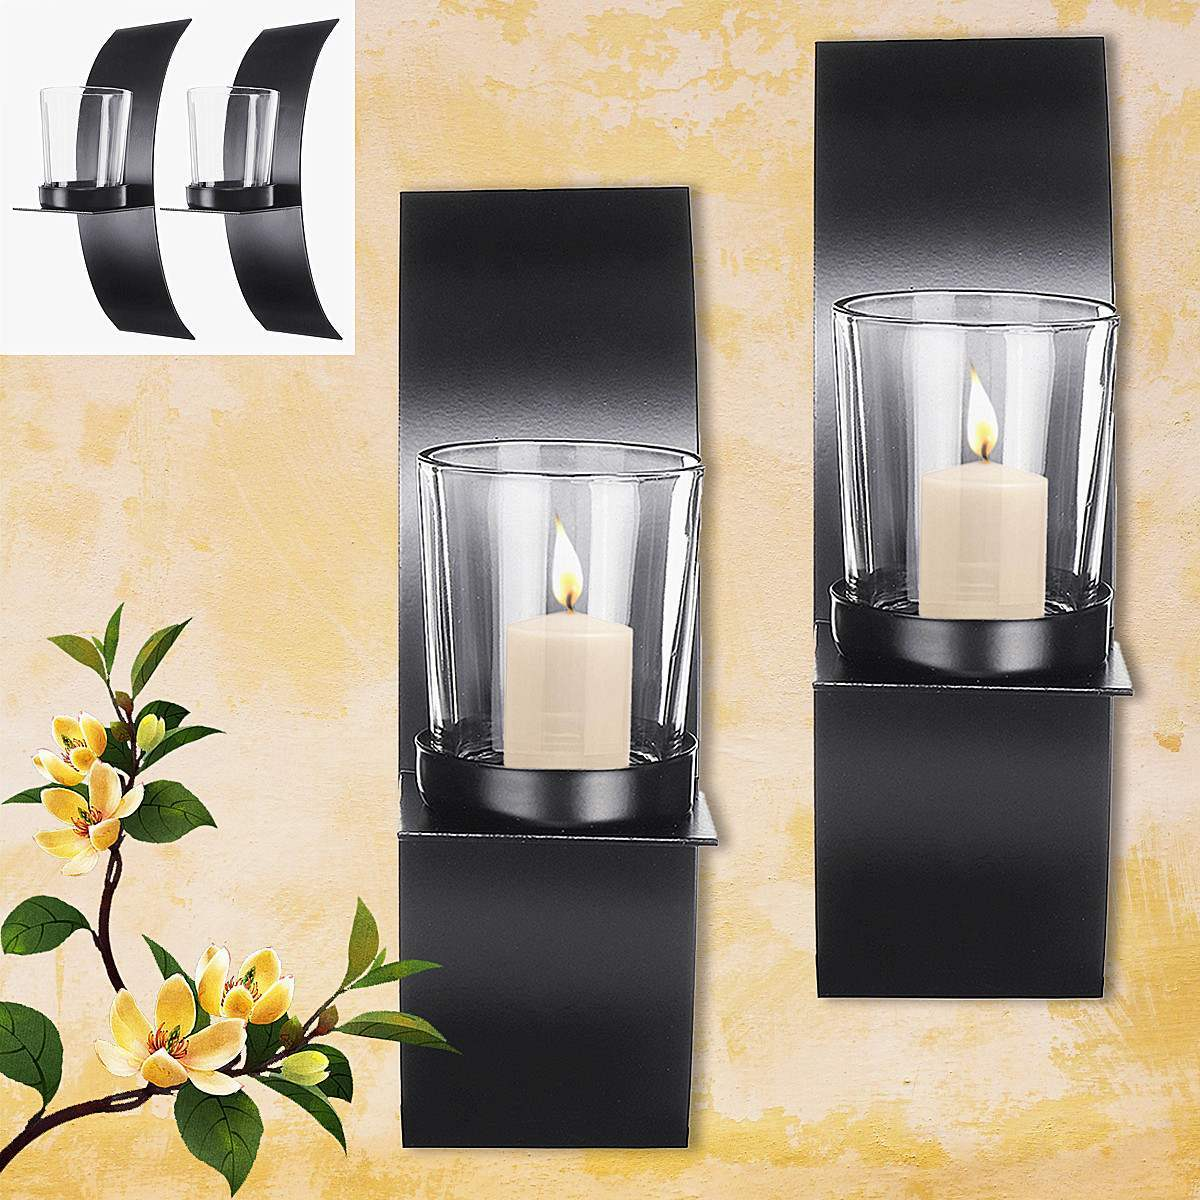 Discount Modern Candle Wall Sconce Modern Candle Wall Sconce 2020 On Sale At Dhgate Com